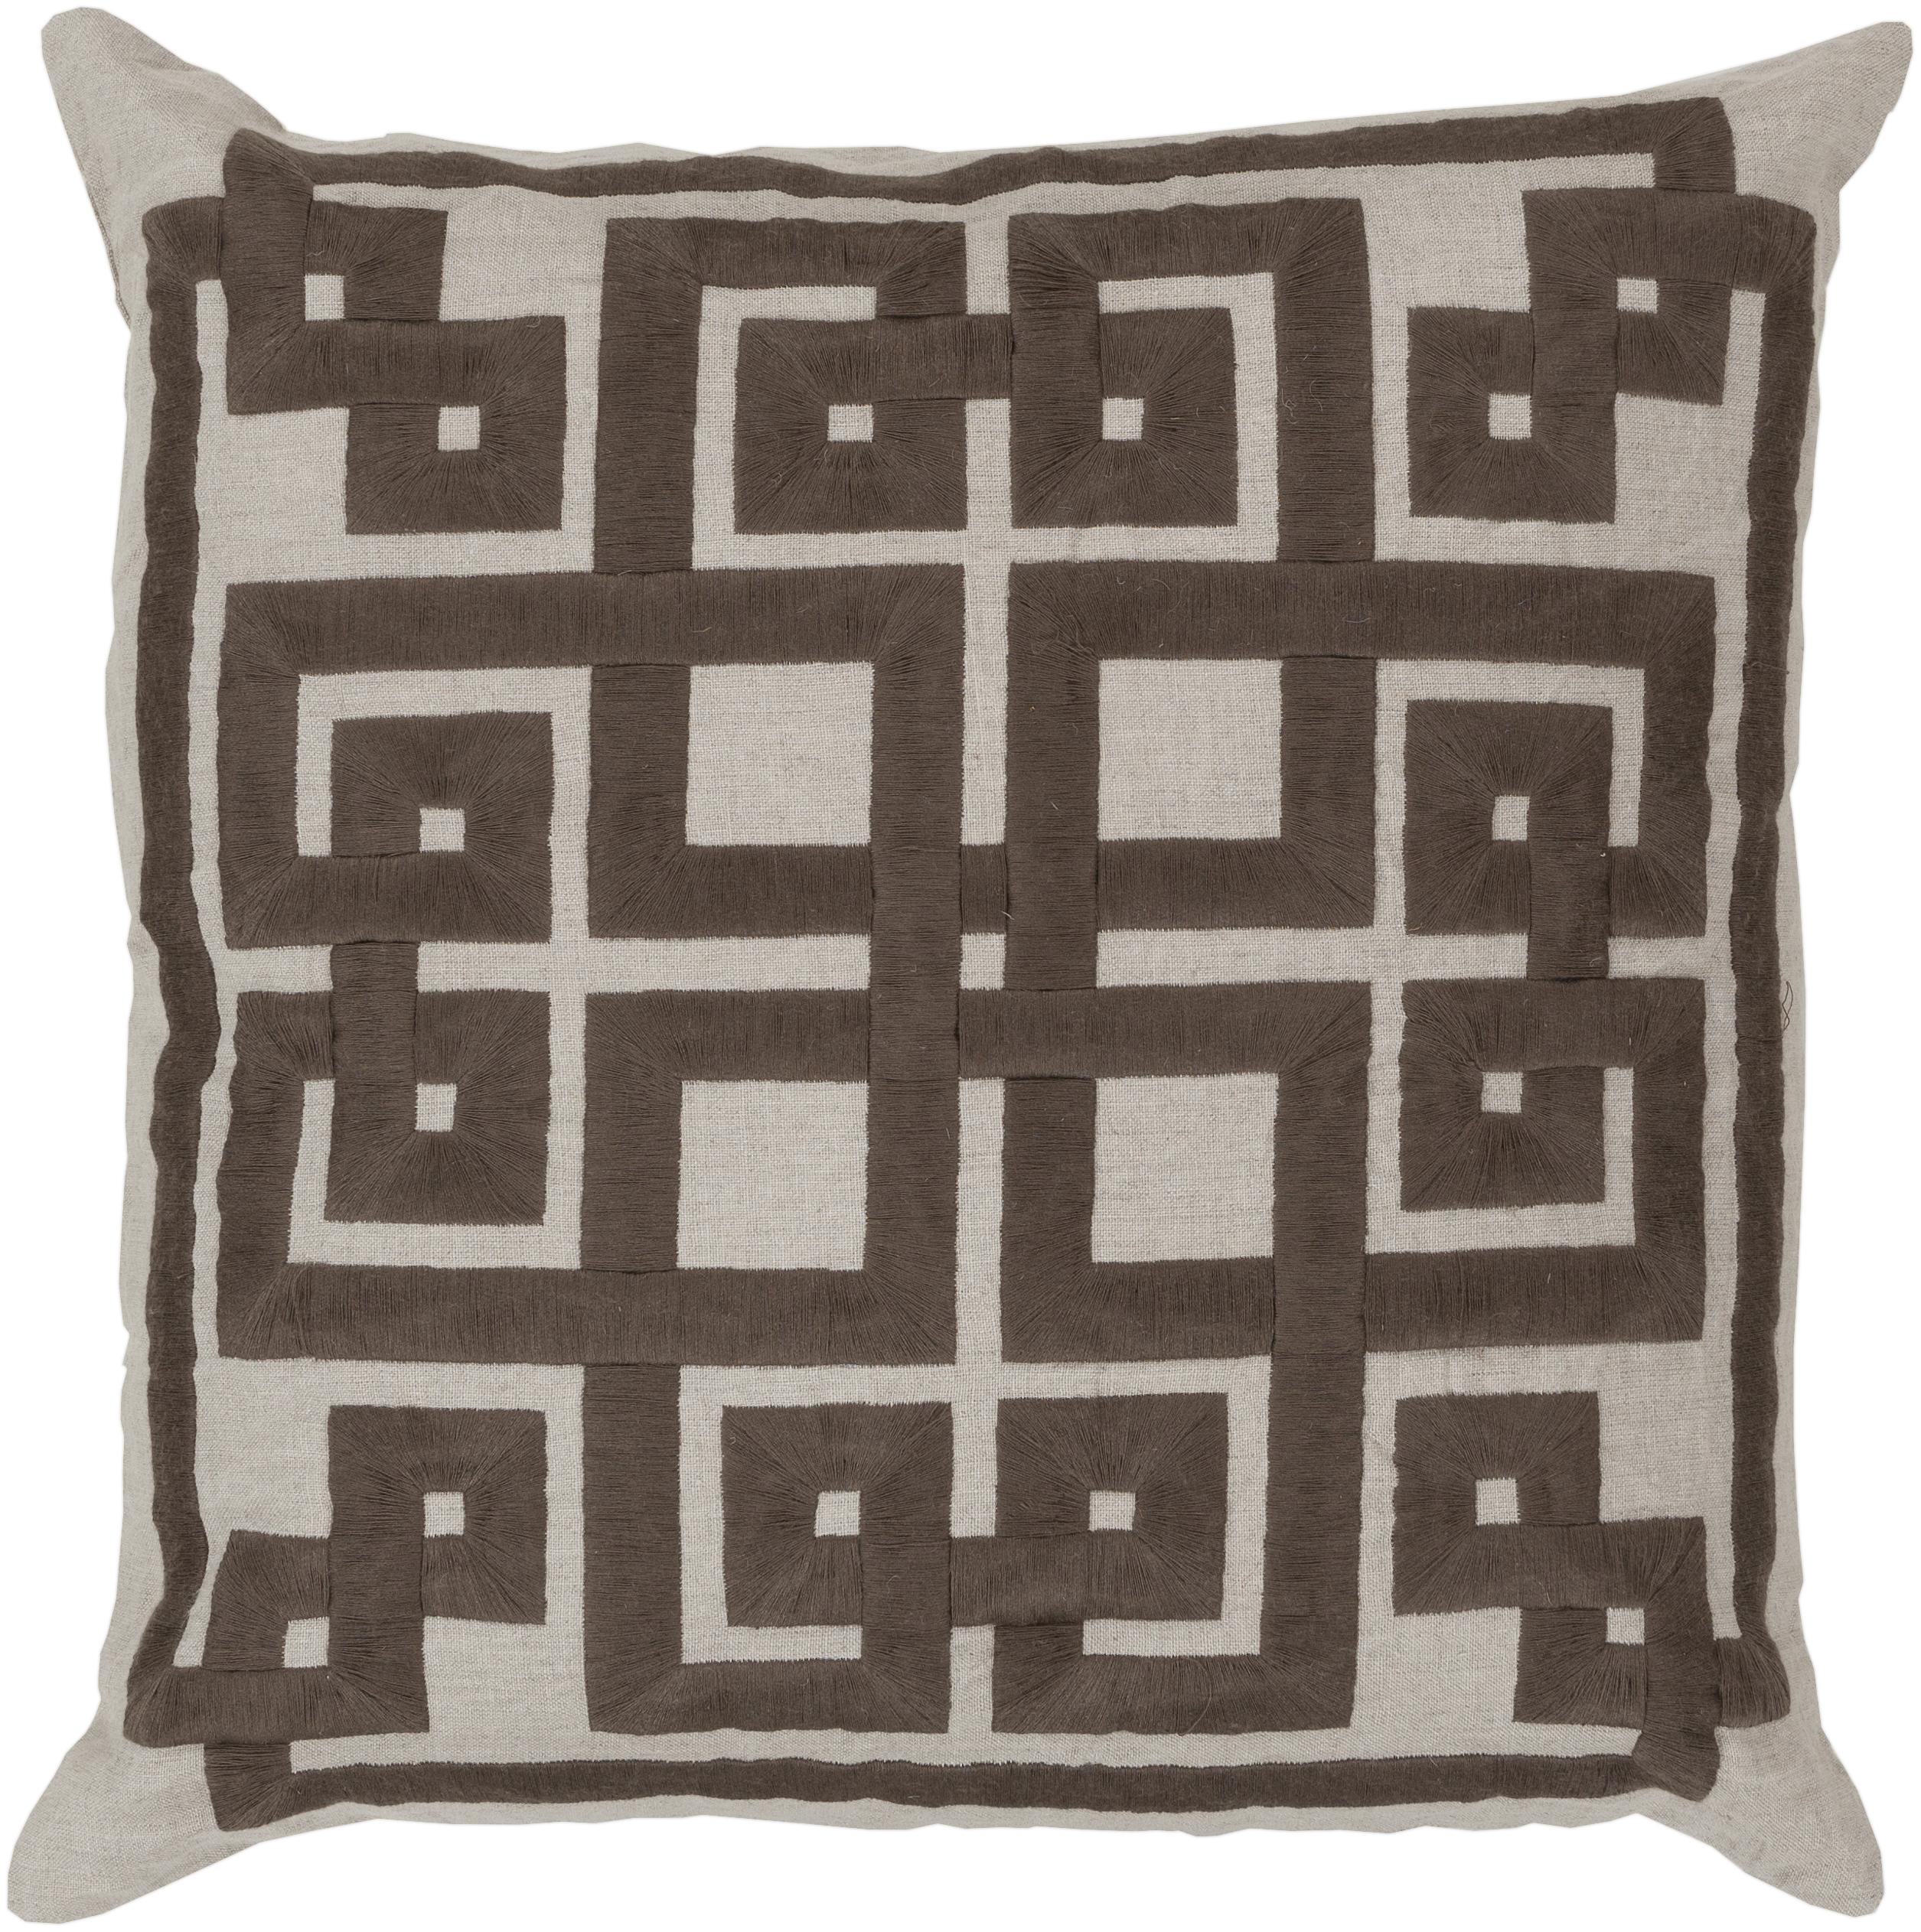 "Surya Pillows 22"" x 22"" Pillow - Item Number: LD001-2222P"